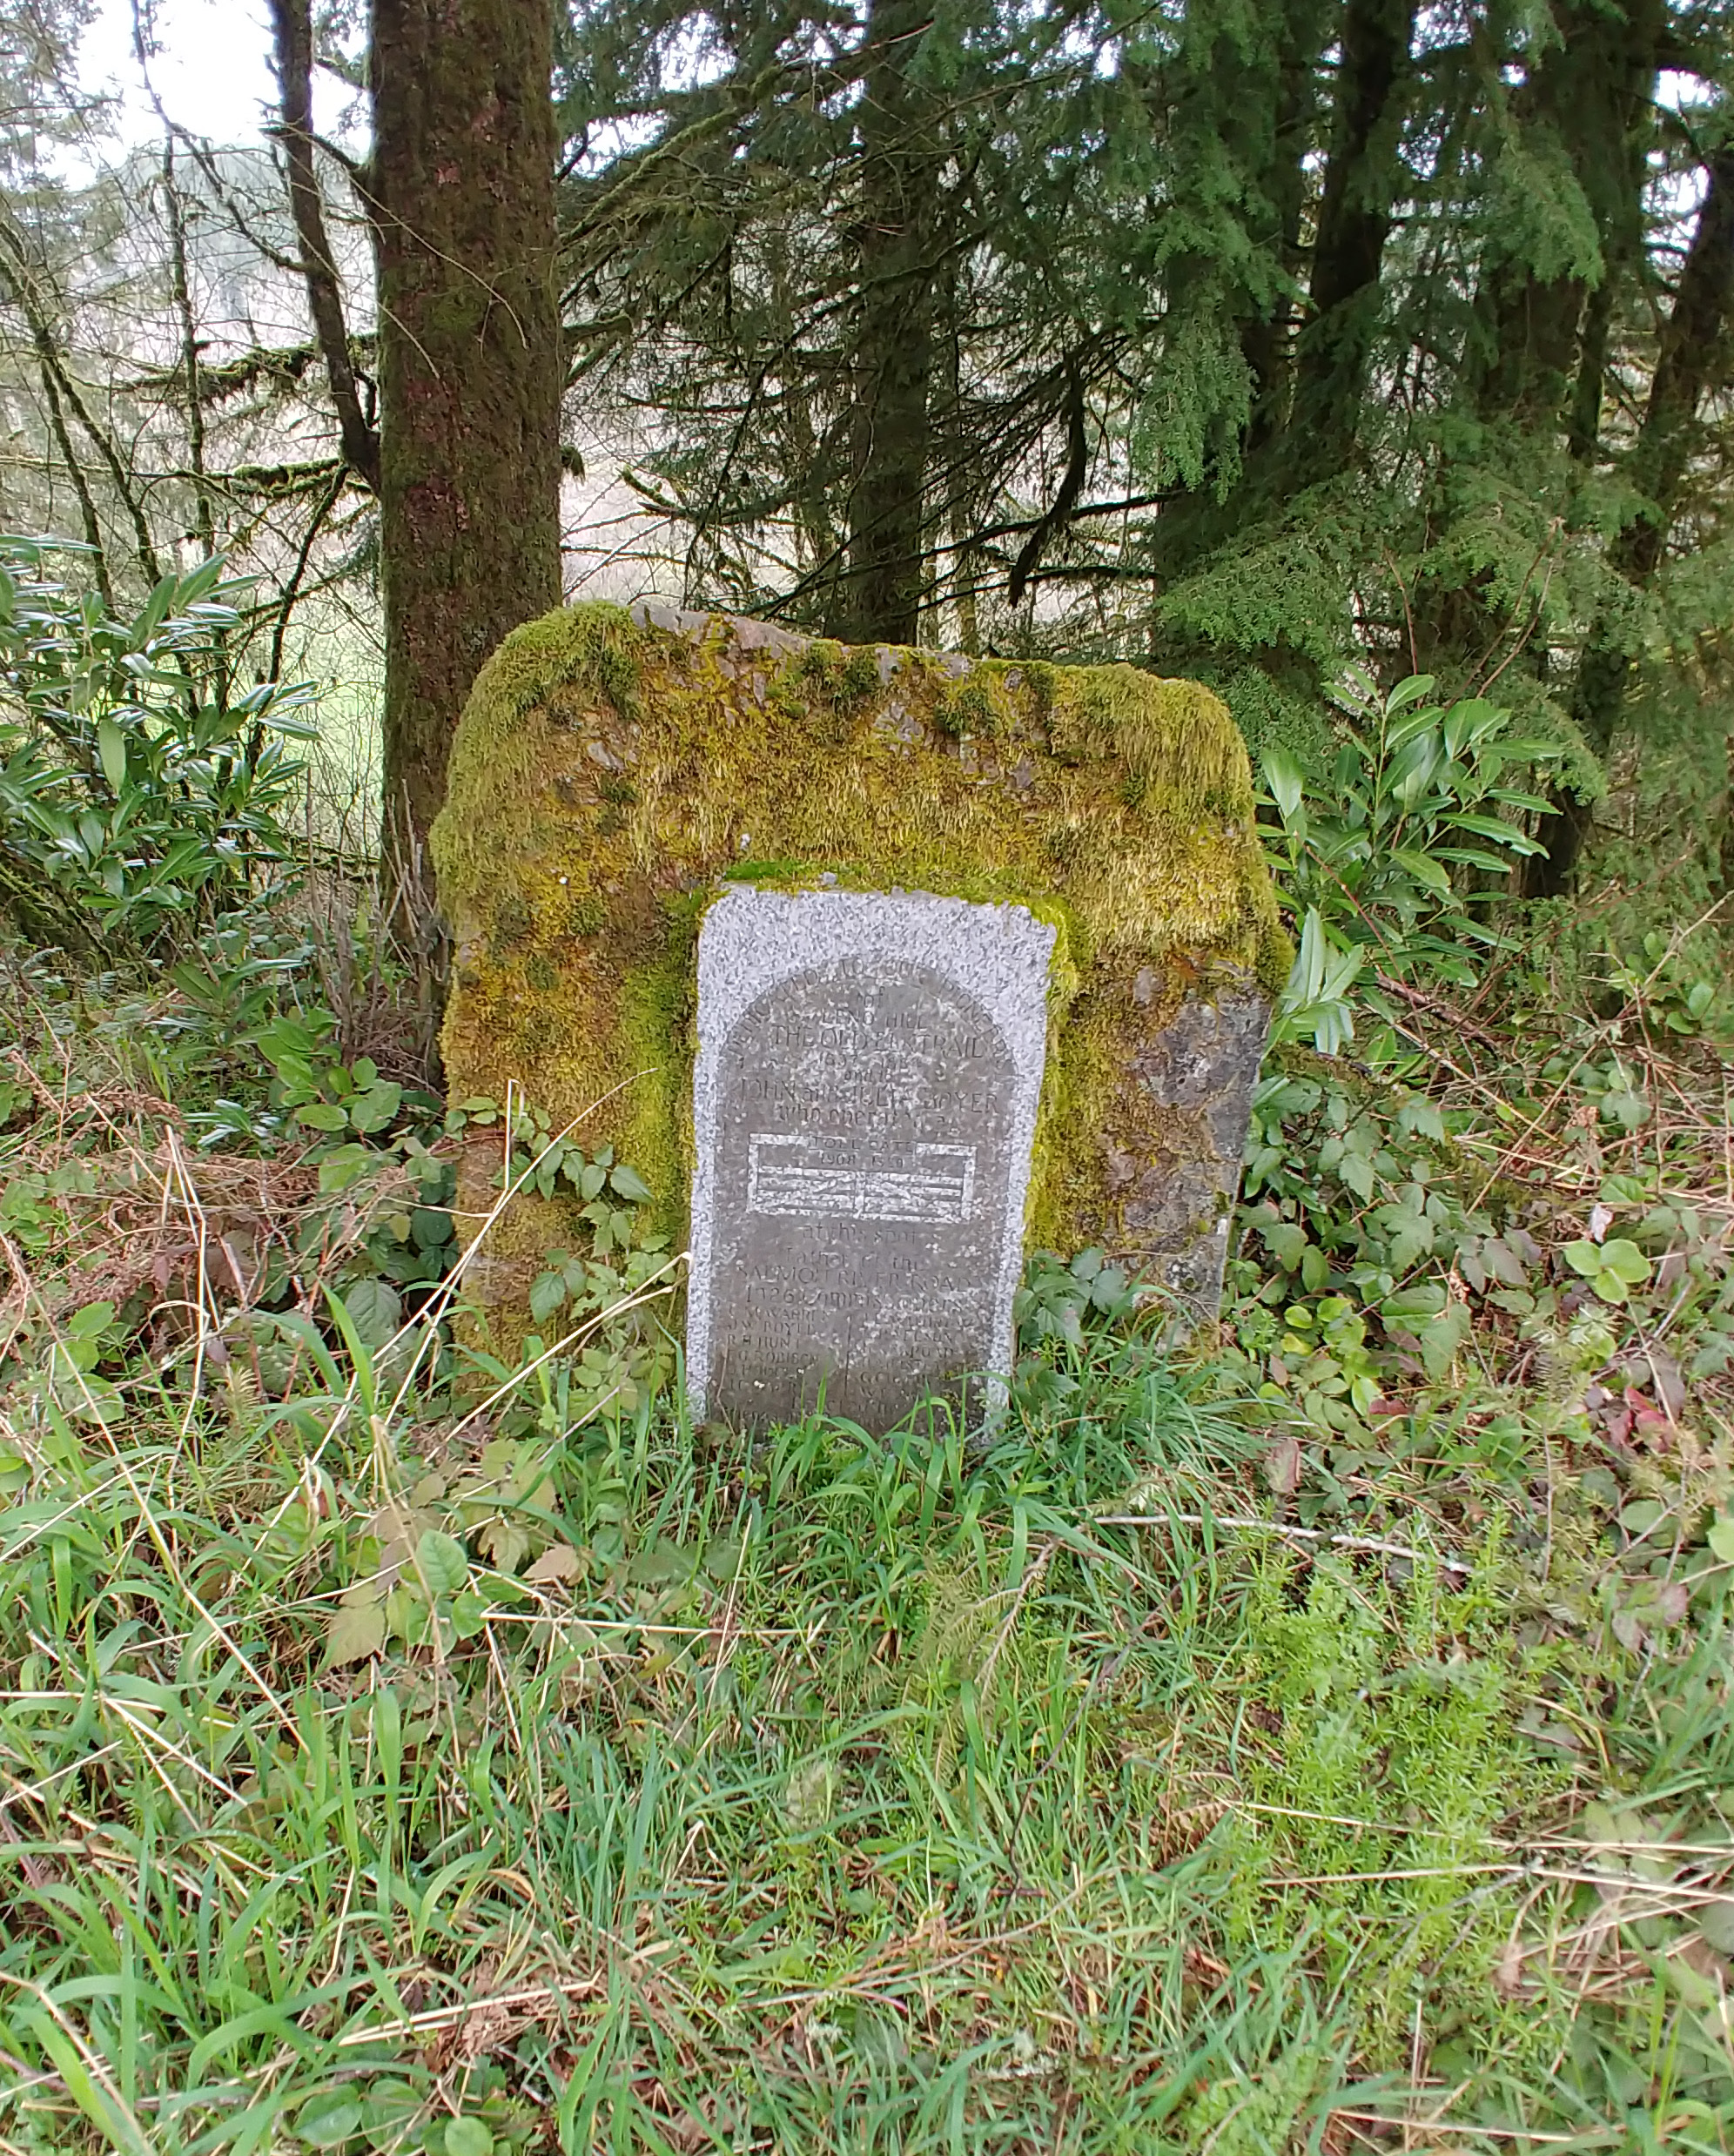 The granite marker notes the the Old